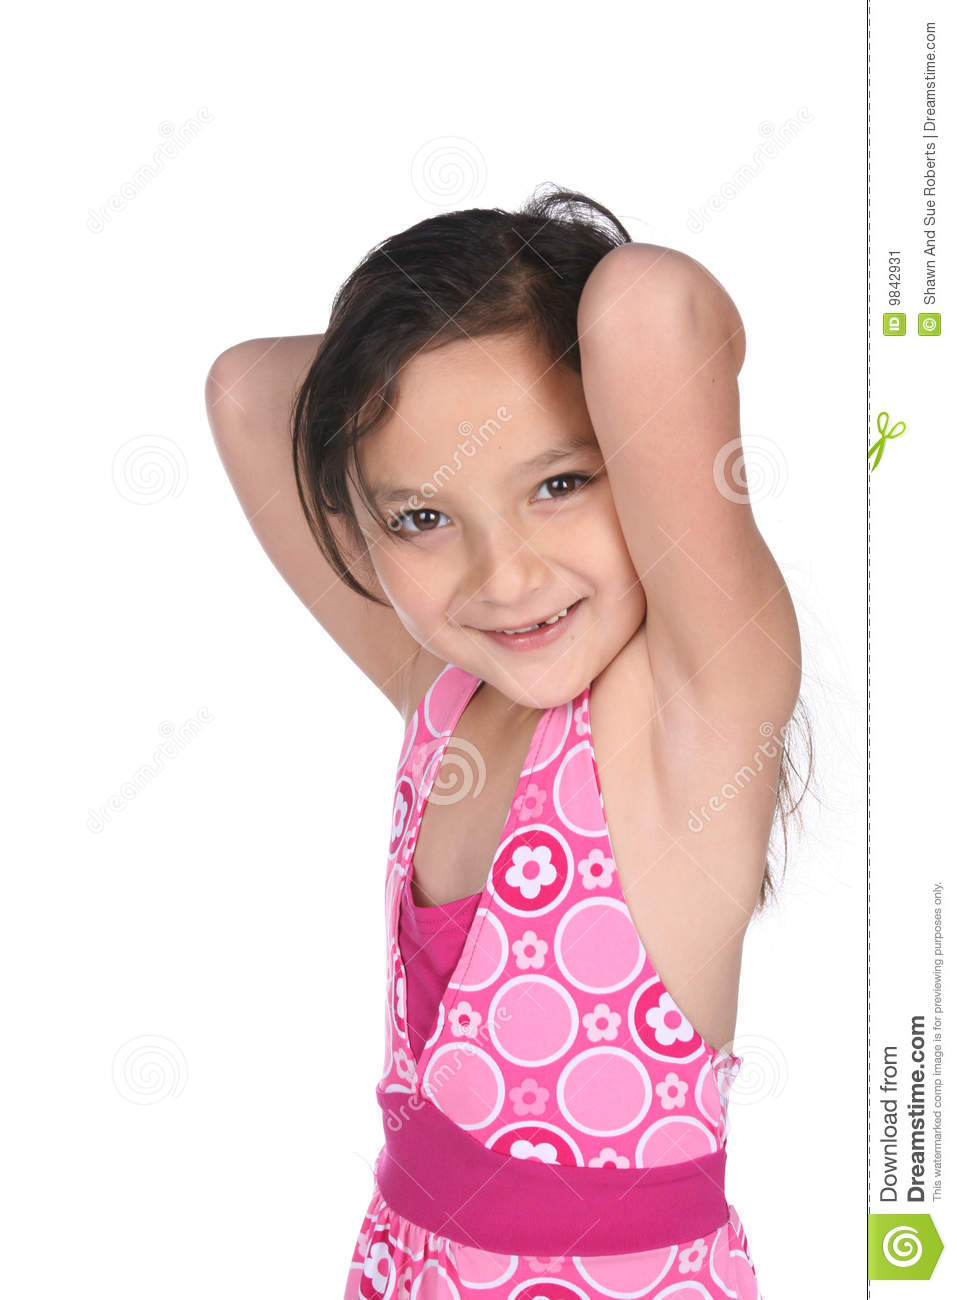 Pretty Mixed Race Girl With Arms Raised Stock Image - Image of brown ...